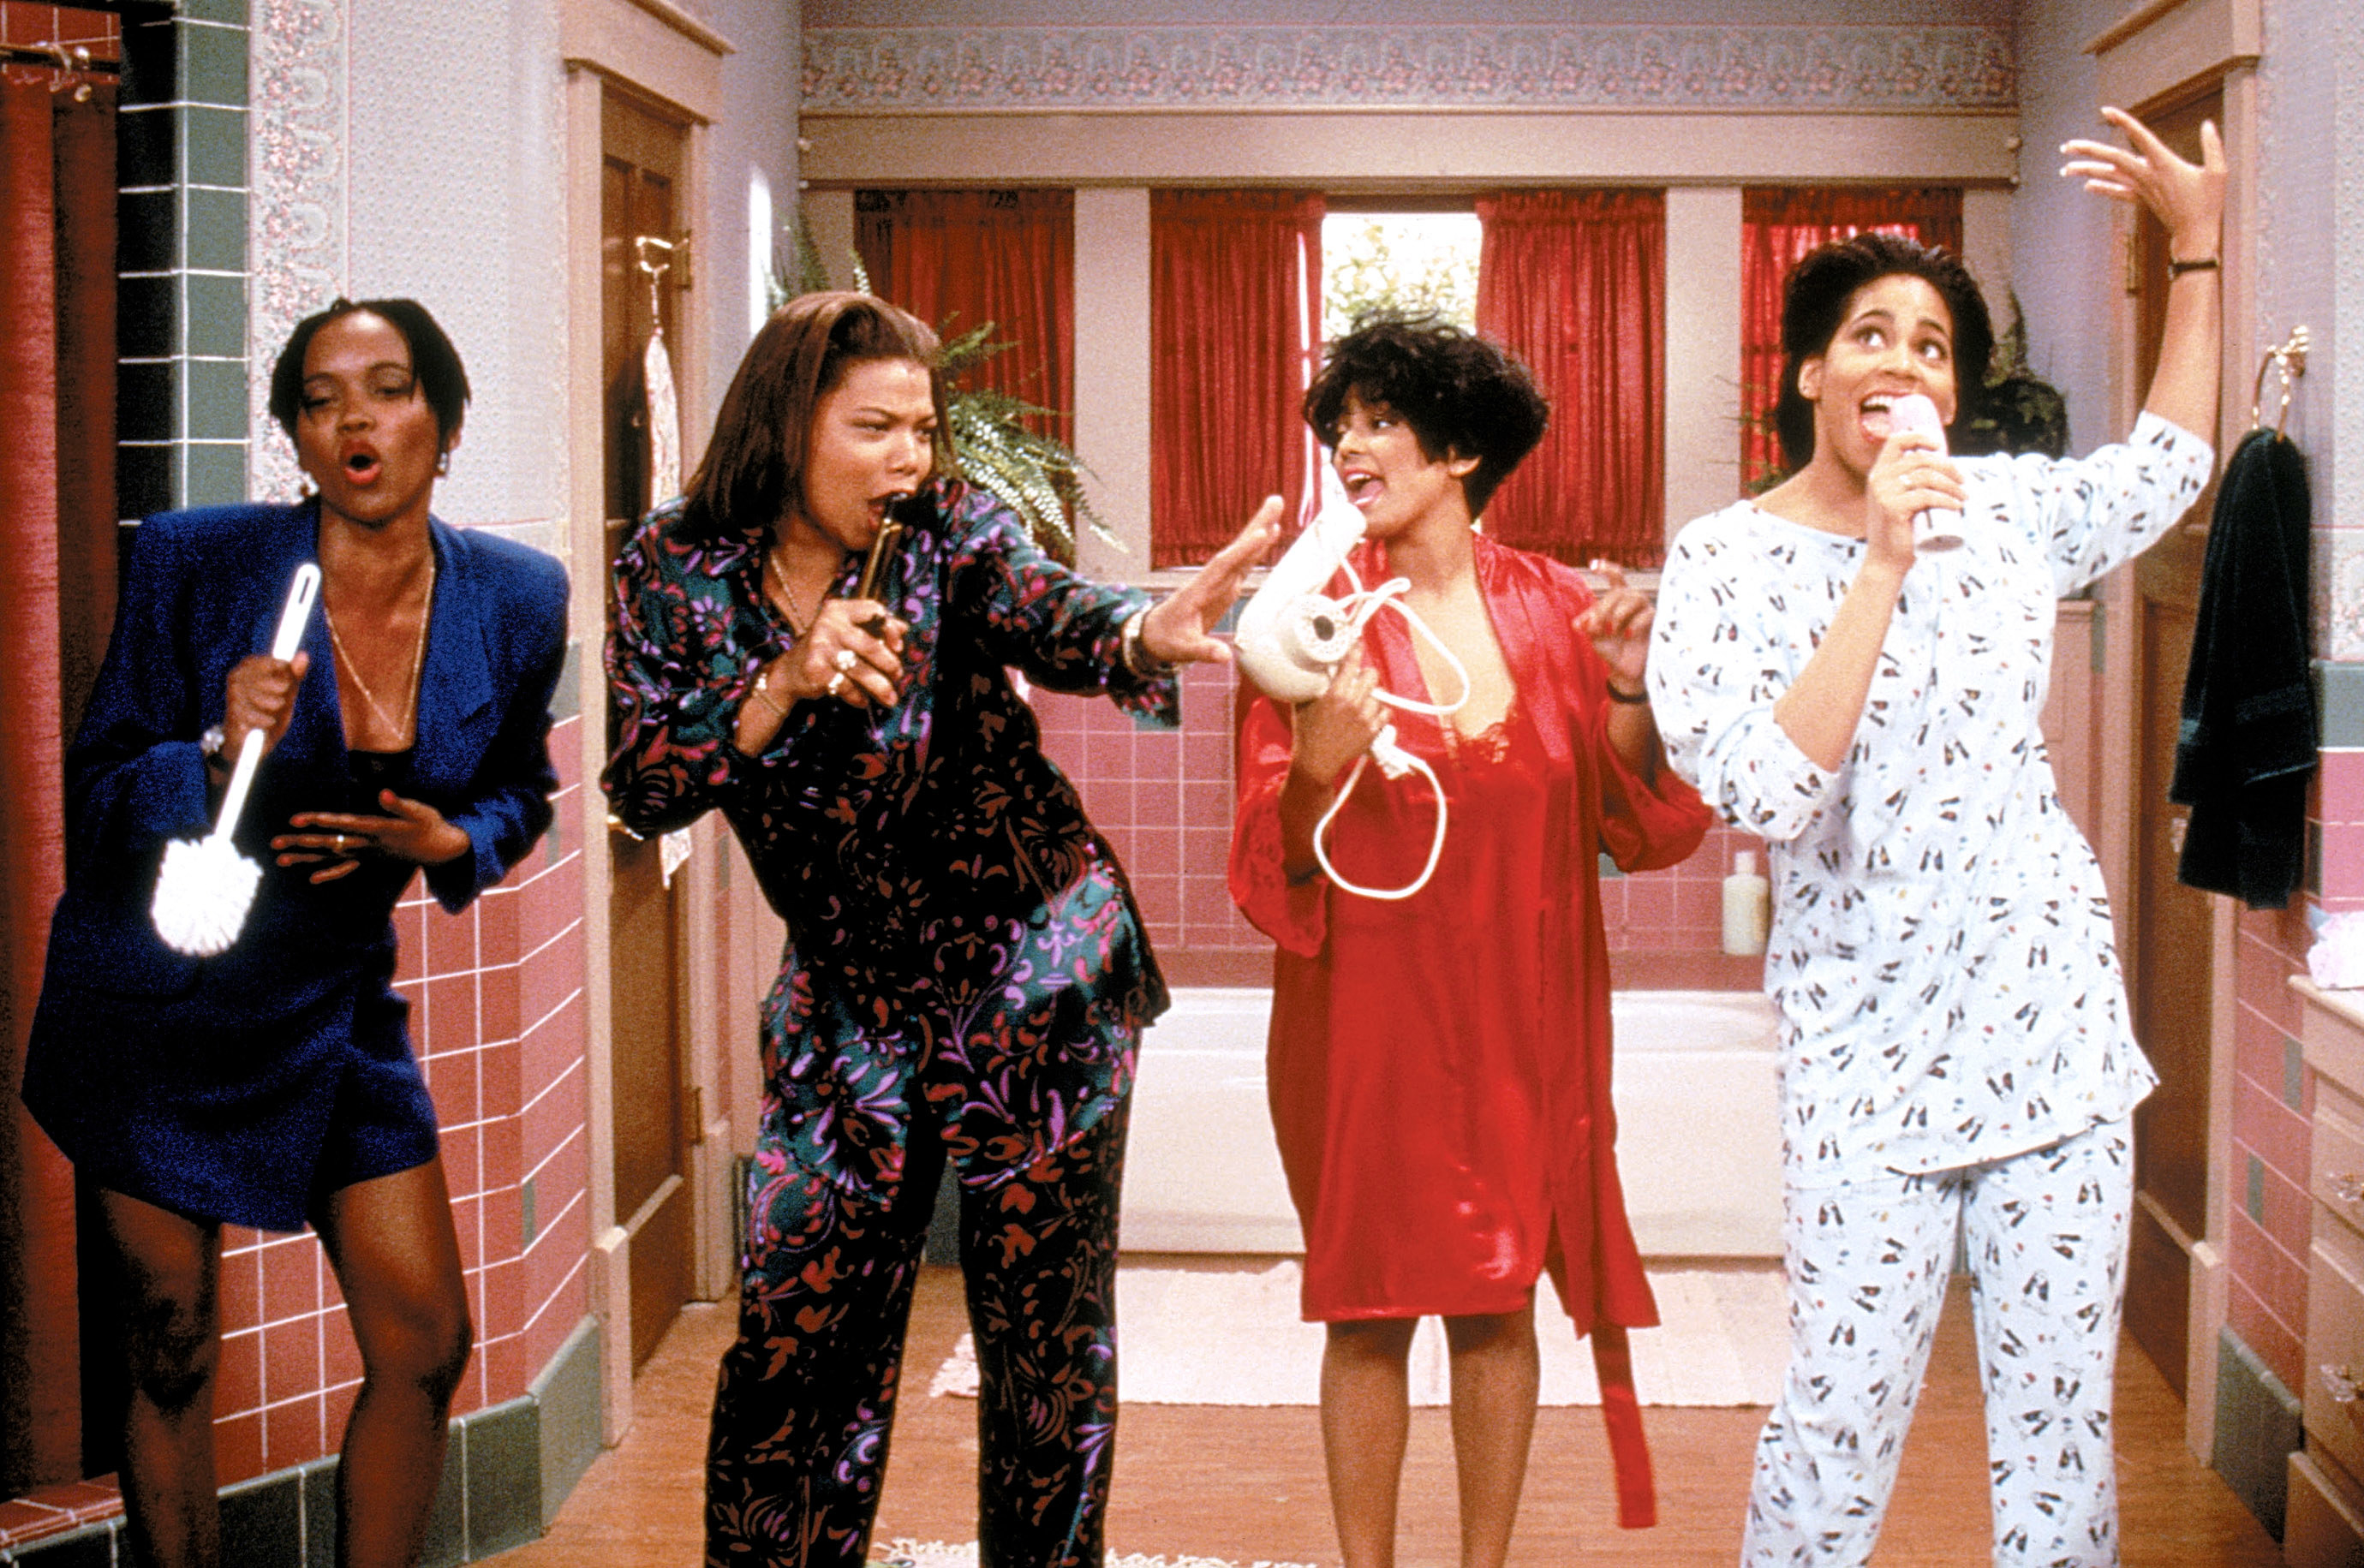 """Erika Alexander, Queen Latifah, Kim Fields, and Kim Coles singing into hair brushes, blow dryers, and other beauty and bathroom products asMax,Khadijah,Regine, andSynclaire on """"Living Single"""""""